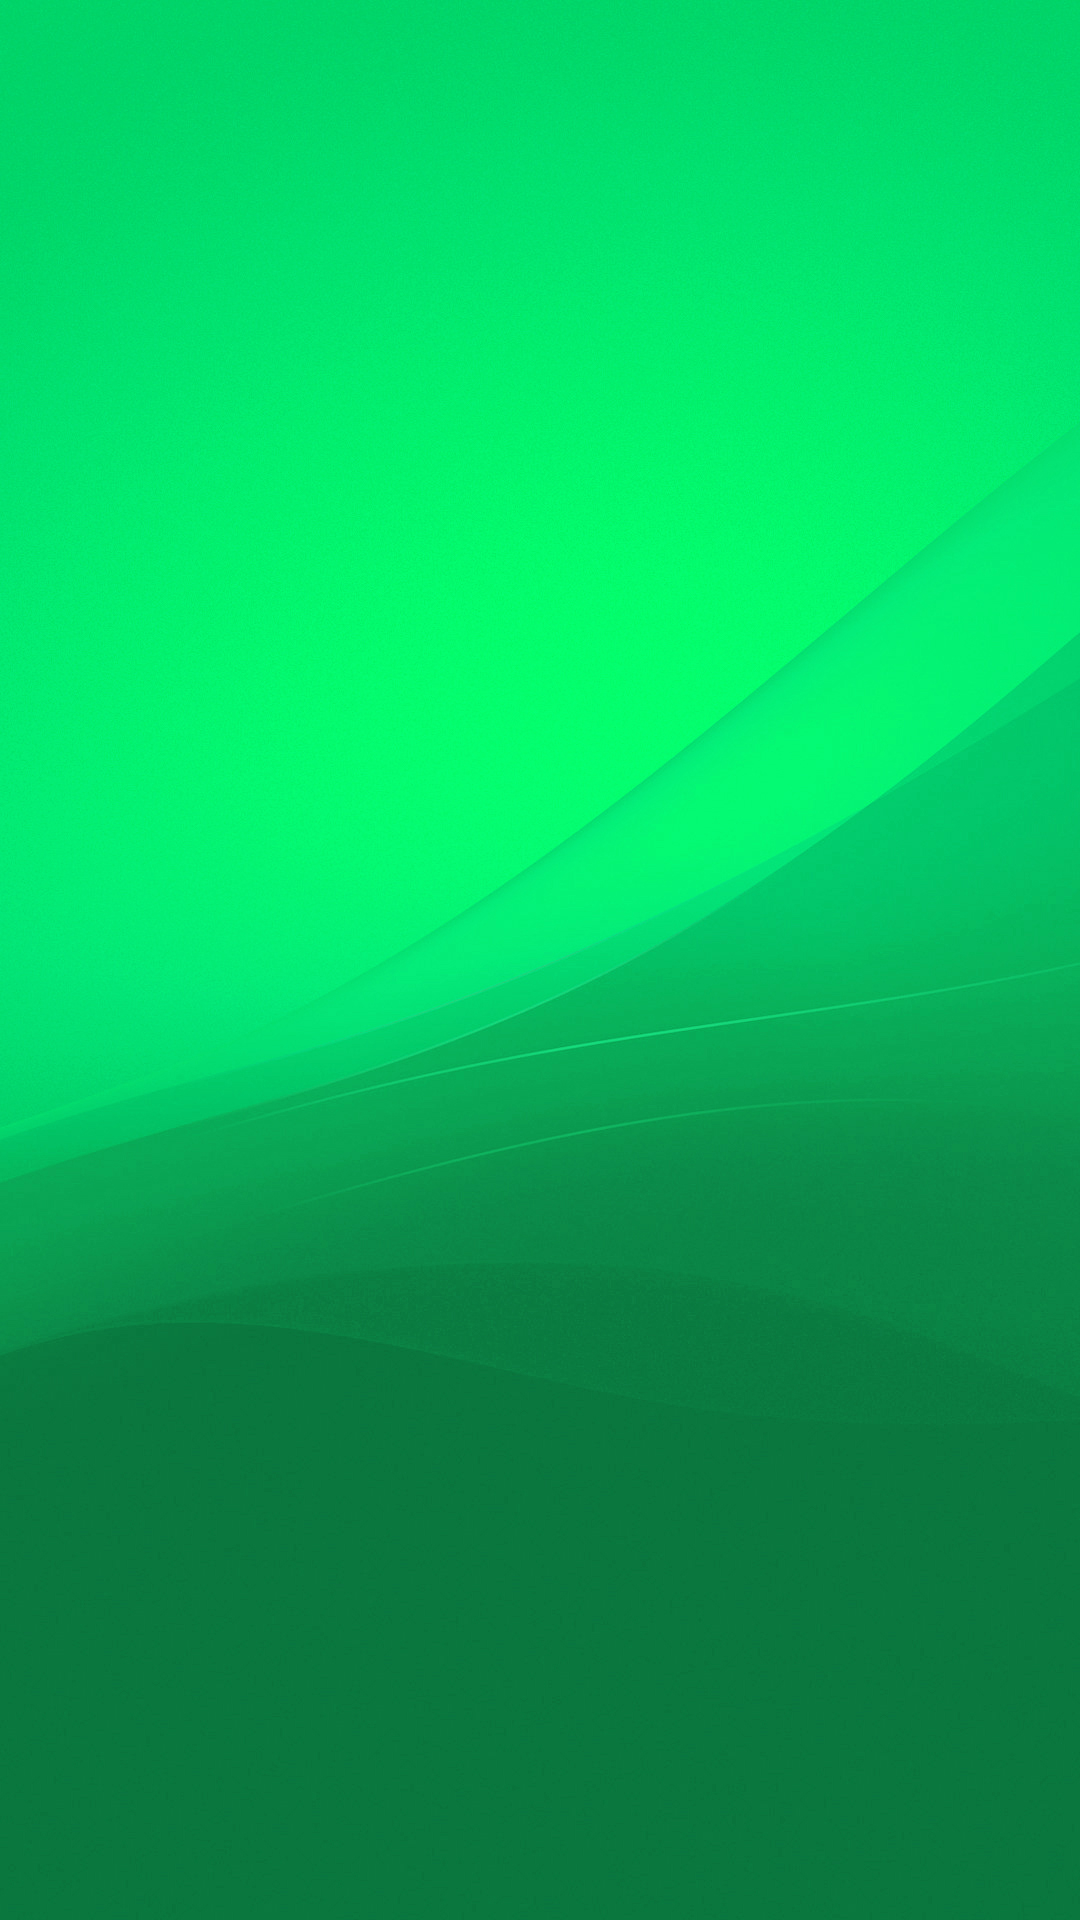 Xperia Lollipop Green Wallpaper — Gizmo Bolt - Exposing ...